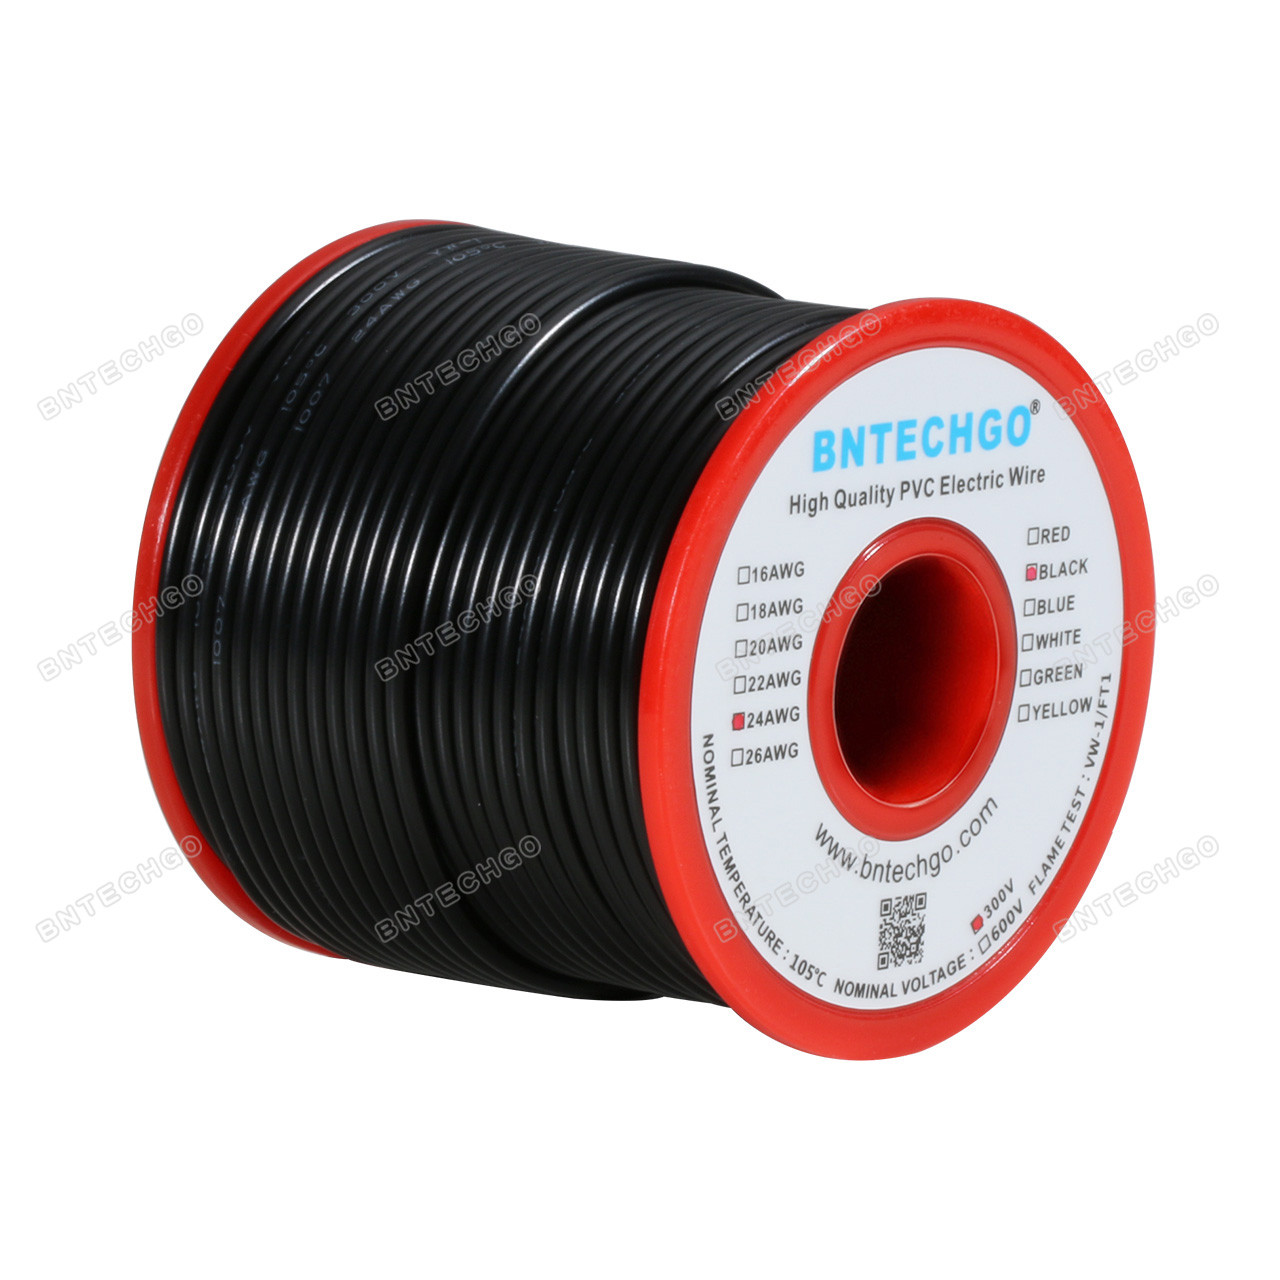 BNTECHGO 22 AWG 1007 Electric Wire 22 Gauge PVC 1007 Wire Stranded Wire Hook Up Wire 300V Stranded Tinned Copper Wire Yellow 25 ft Per Reel for DIY